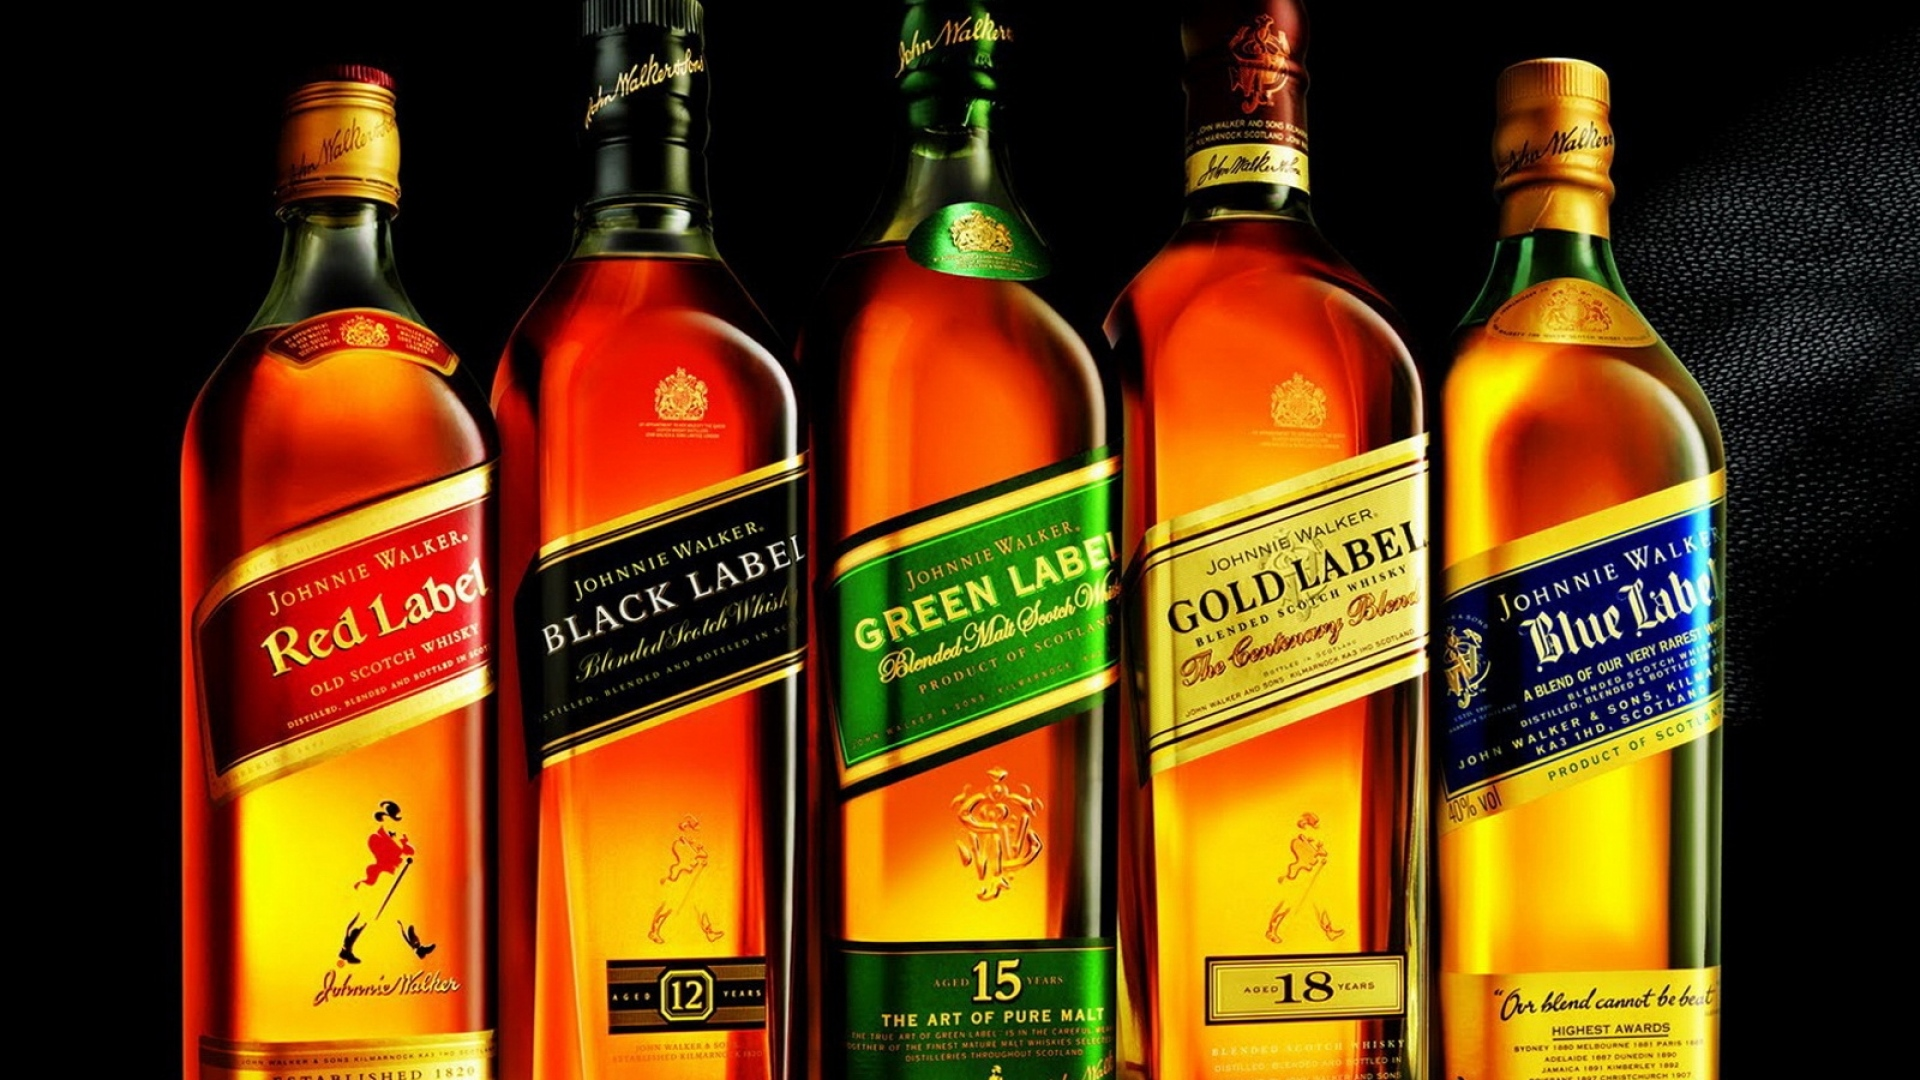 1920x1080 Johnnie walker, Collection desktop PC and Mac